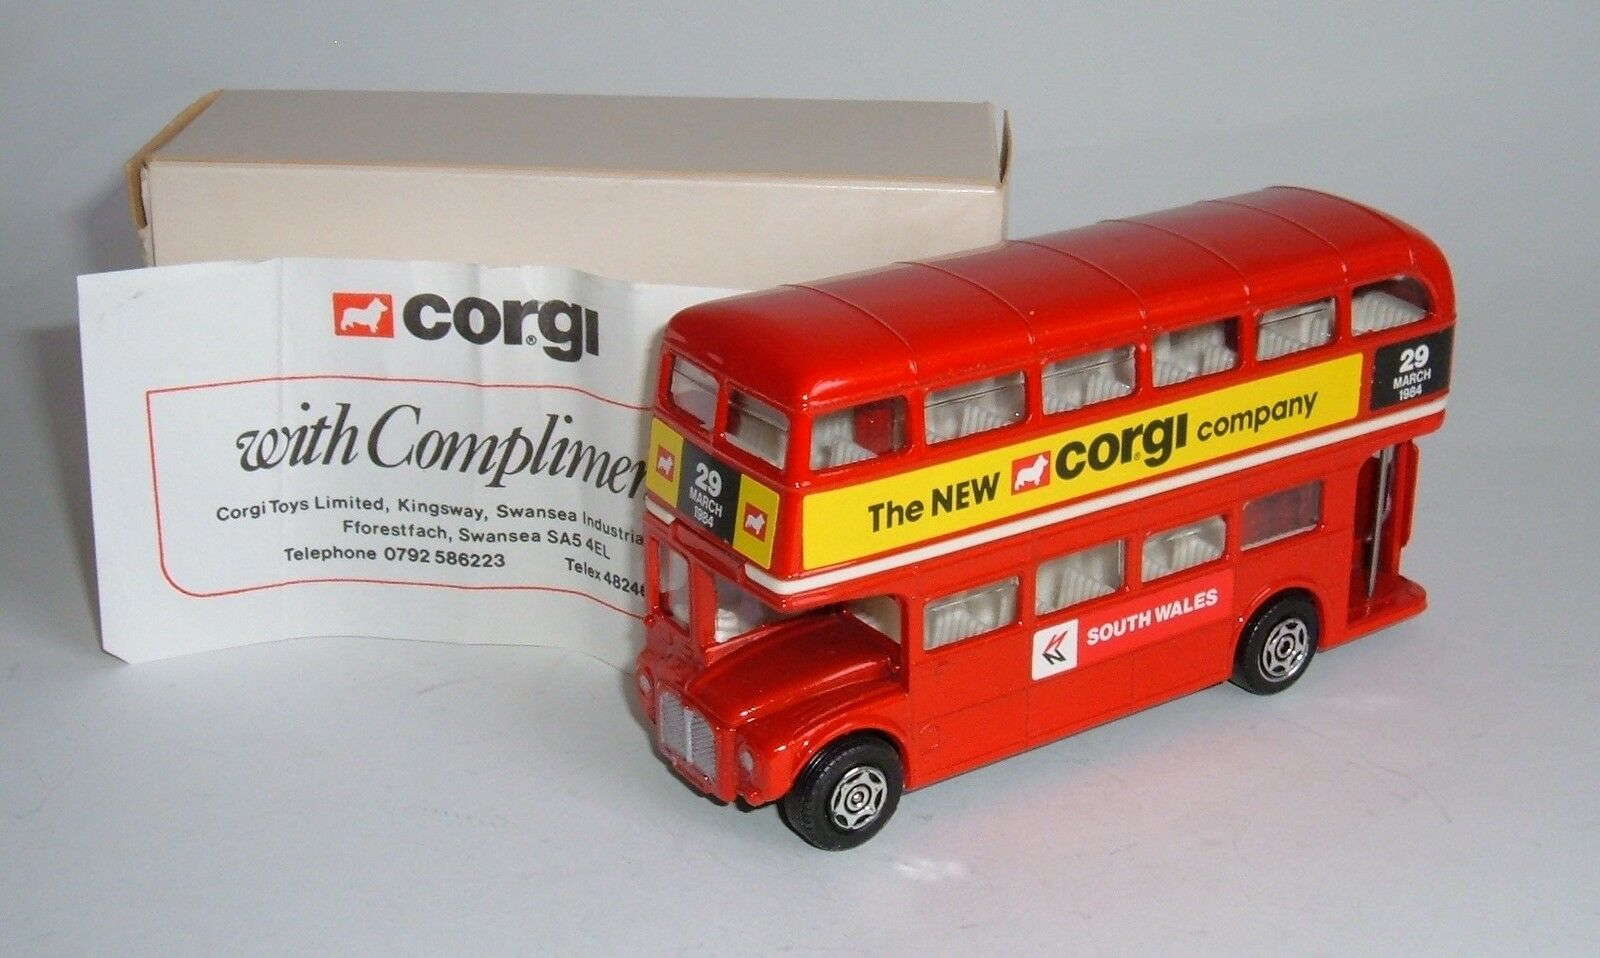 Corgi Spielzeugs No. 482, London Routemaster bus - 'The New Corgi Company', - Superb.